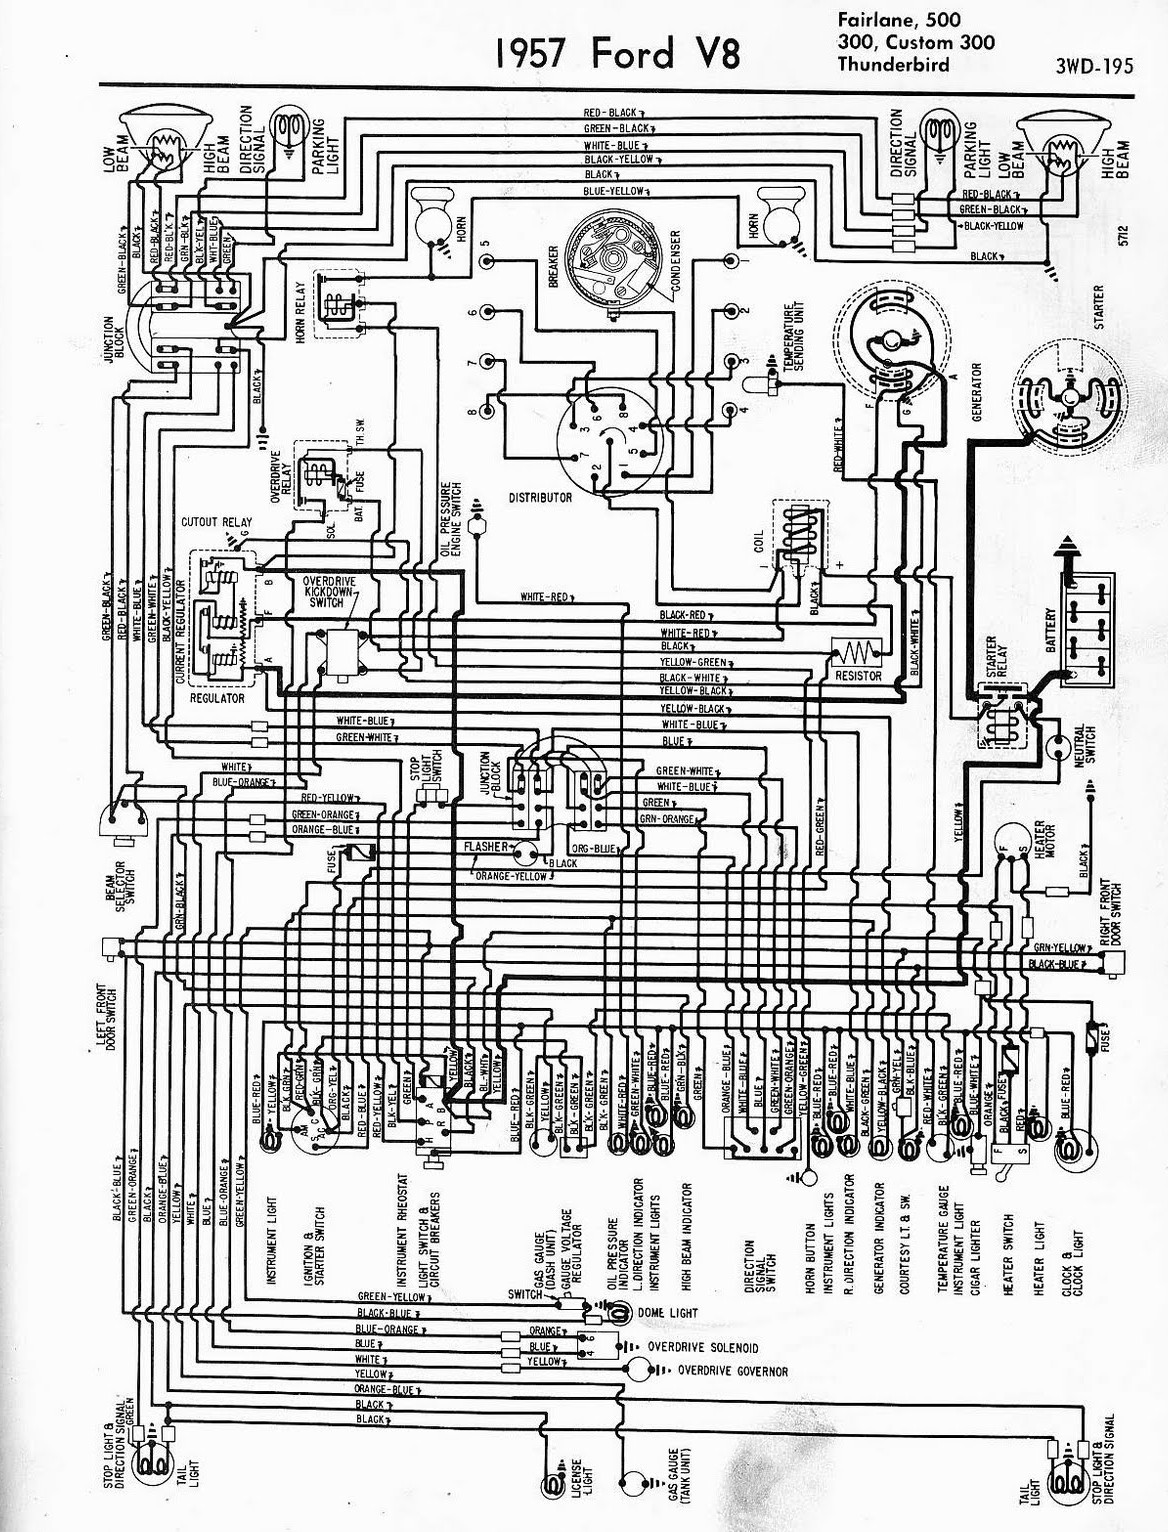 hight resolution of 1957 ford wiring schematic wiring diagram g11 1957 thunderbird wiring diagram 57 ford wiring harness wiring